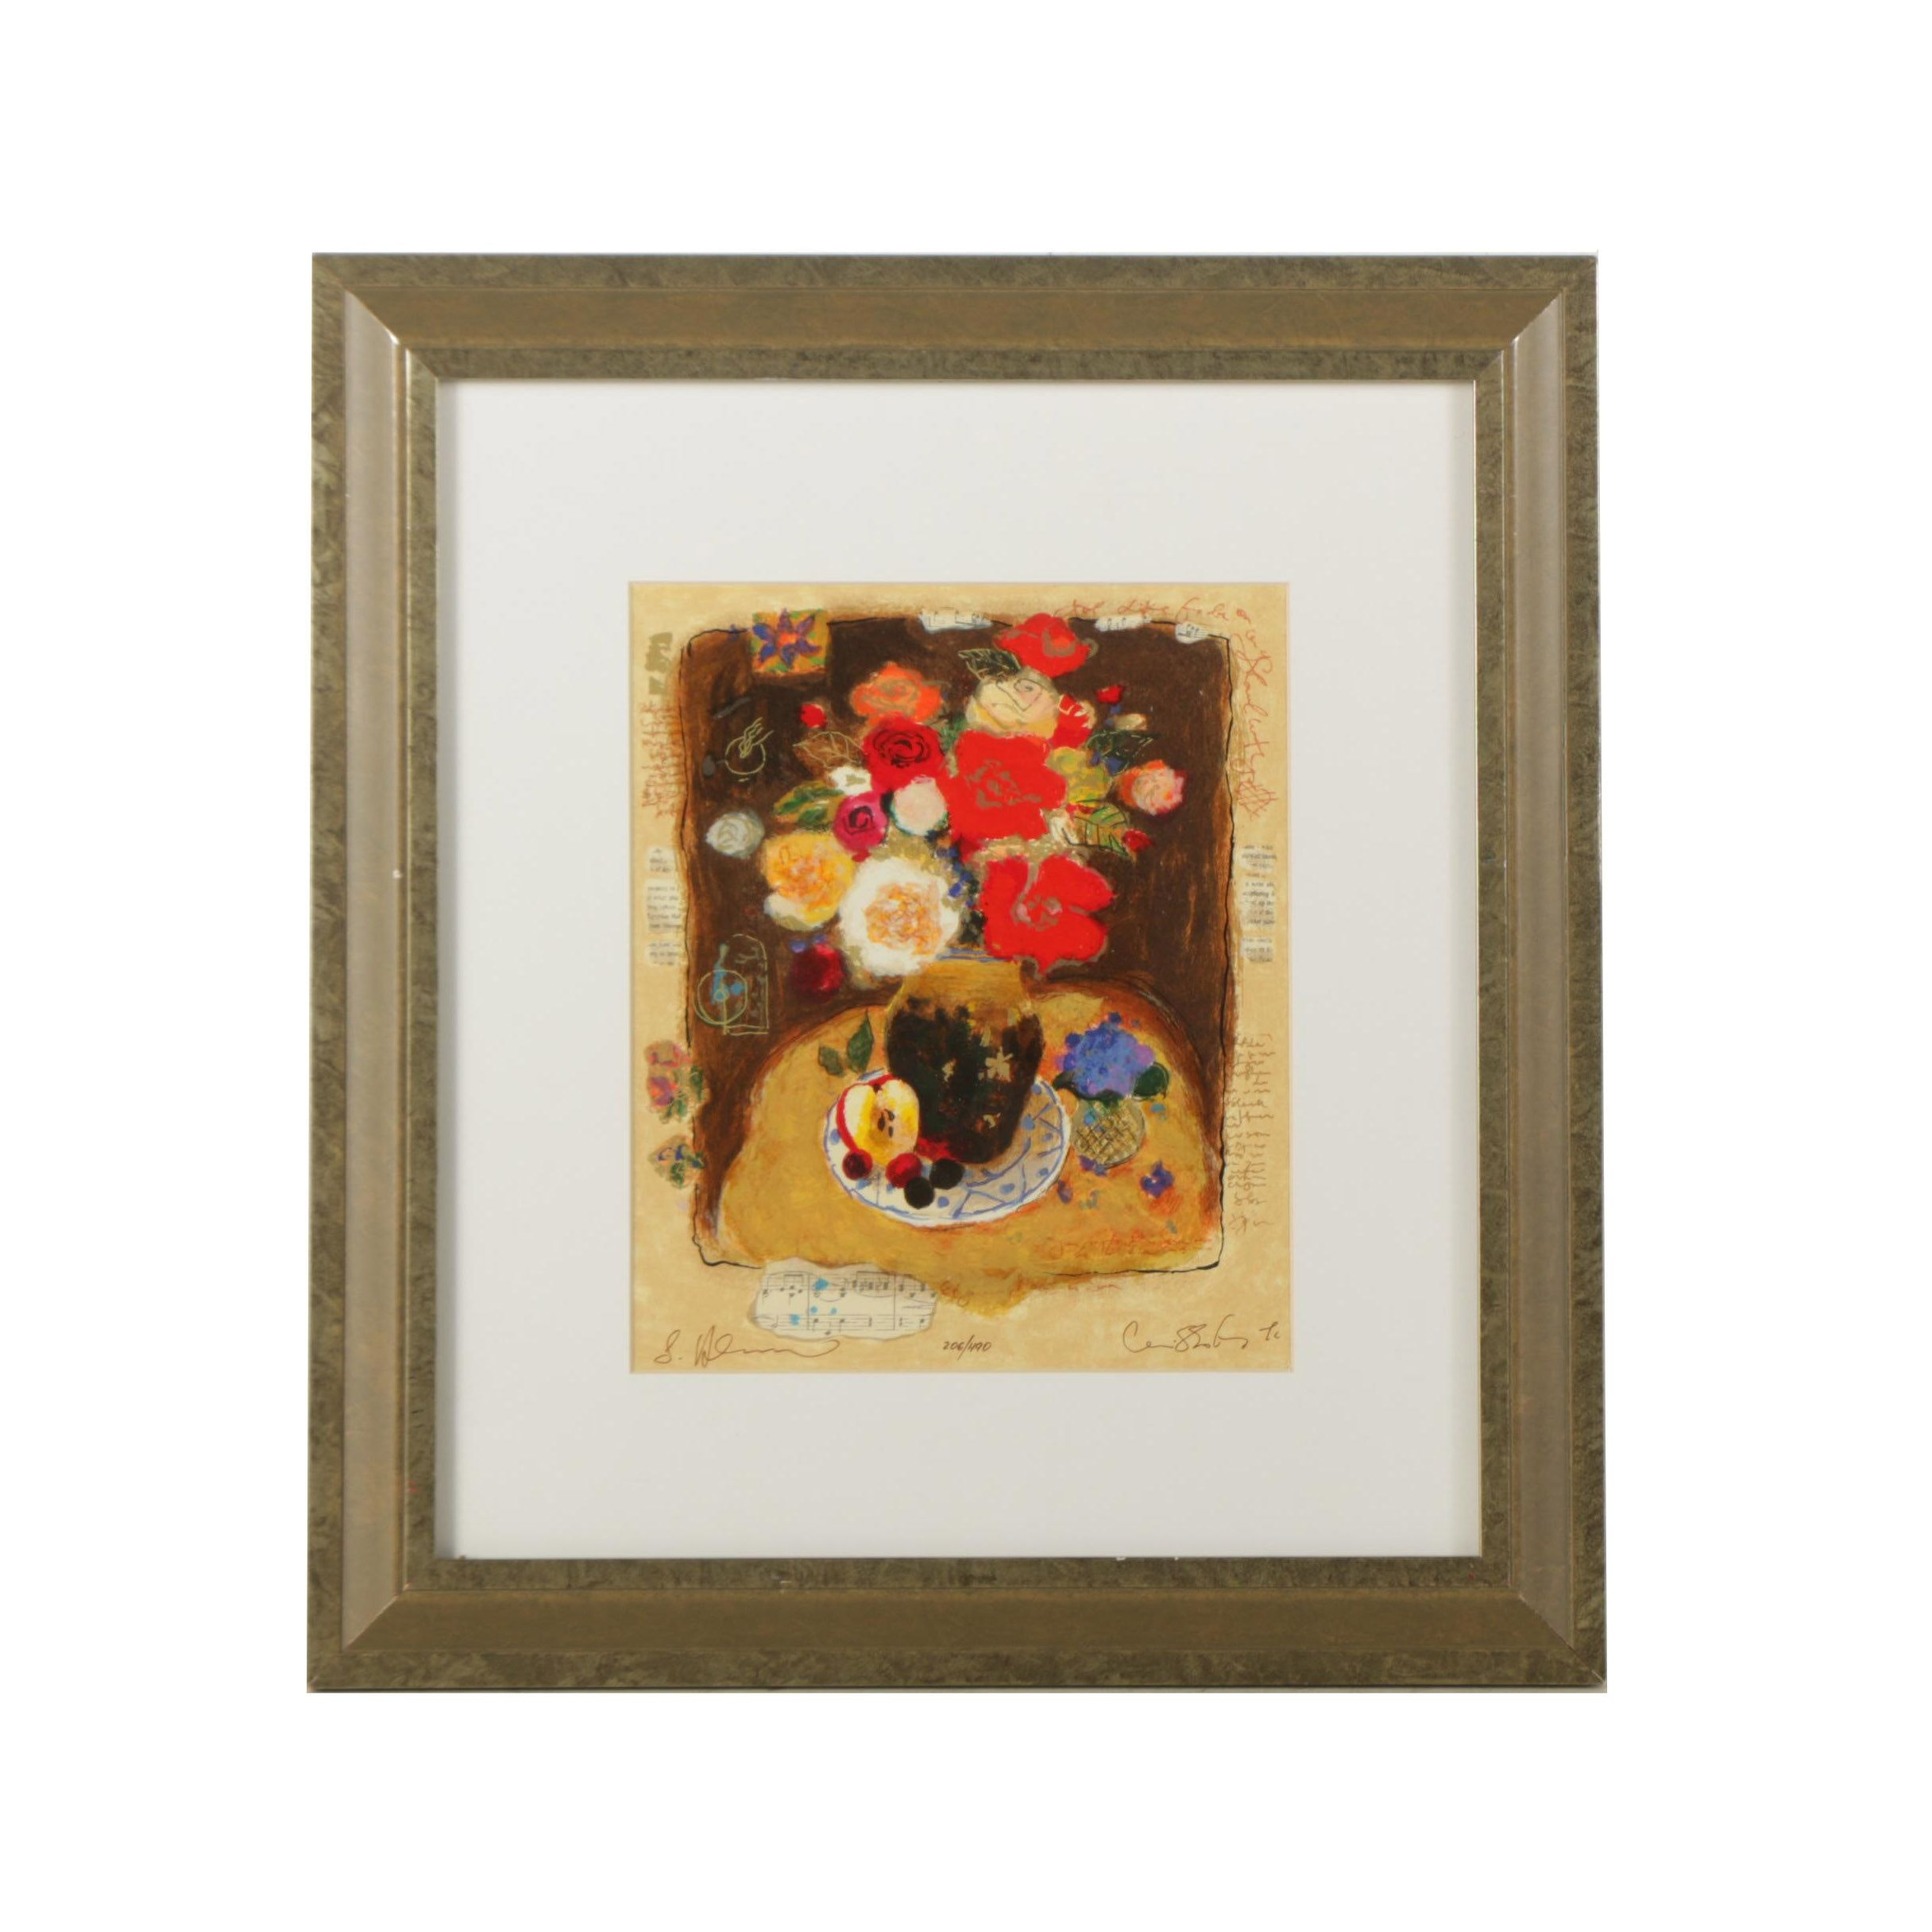 """Wizzotsky & Galtchansky Limited Edition Serigraph """"With All My Heart"""""""